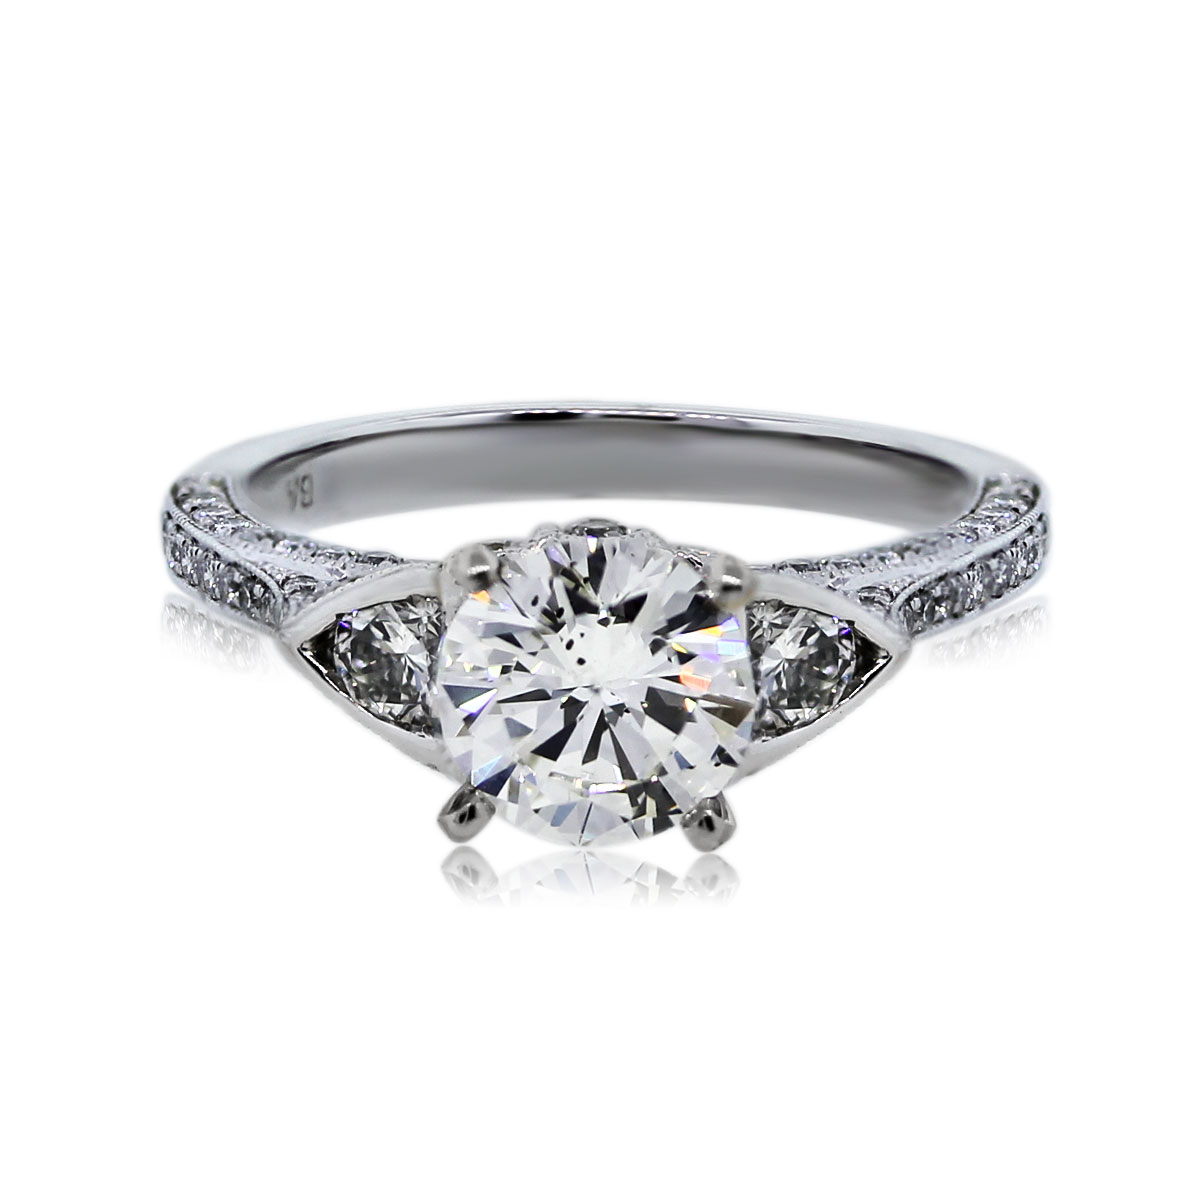 You are Viewing this 1.20ct Round Brilliant Diamond Engagement Ring!